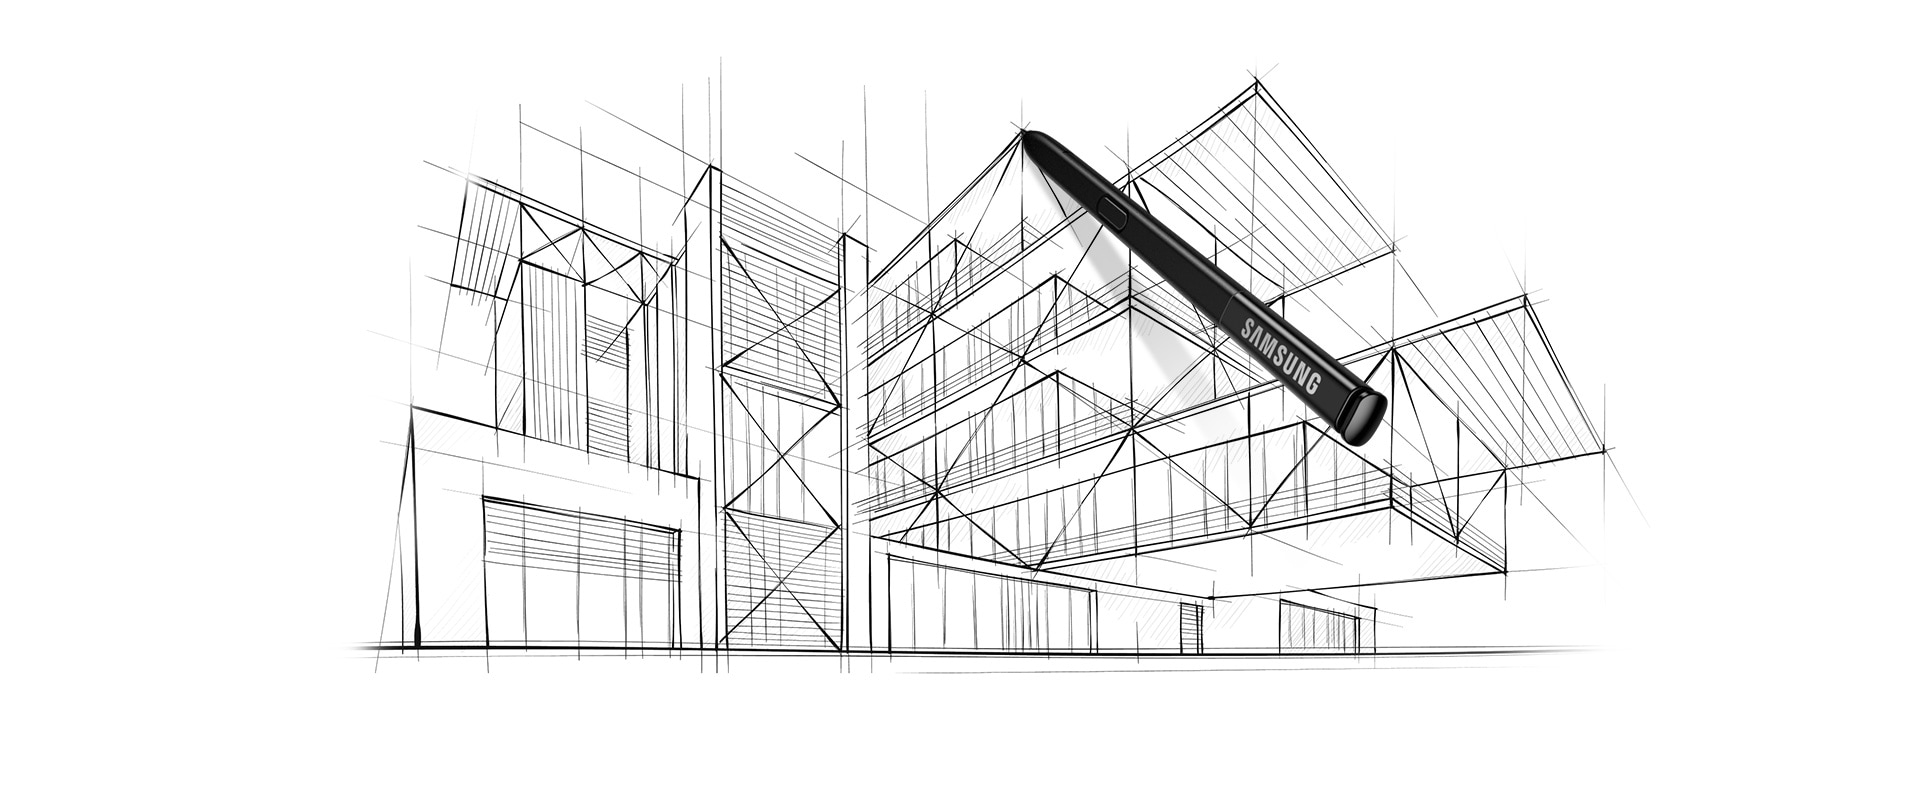 medium resolution of image of a s pen over an architectural line drawing